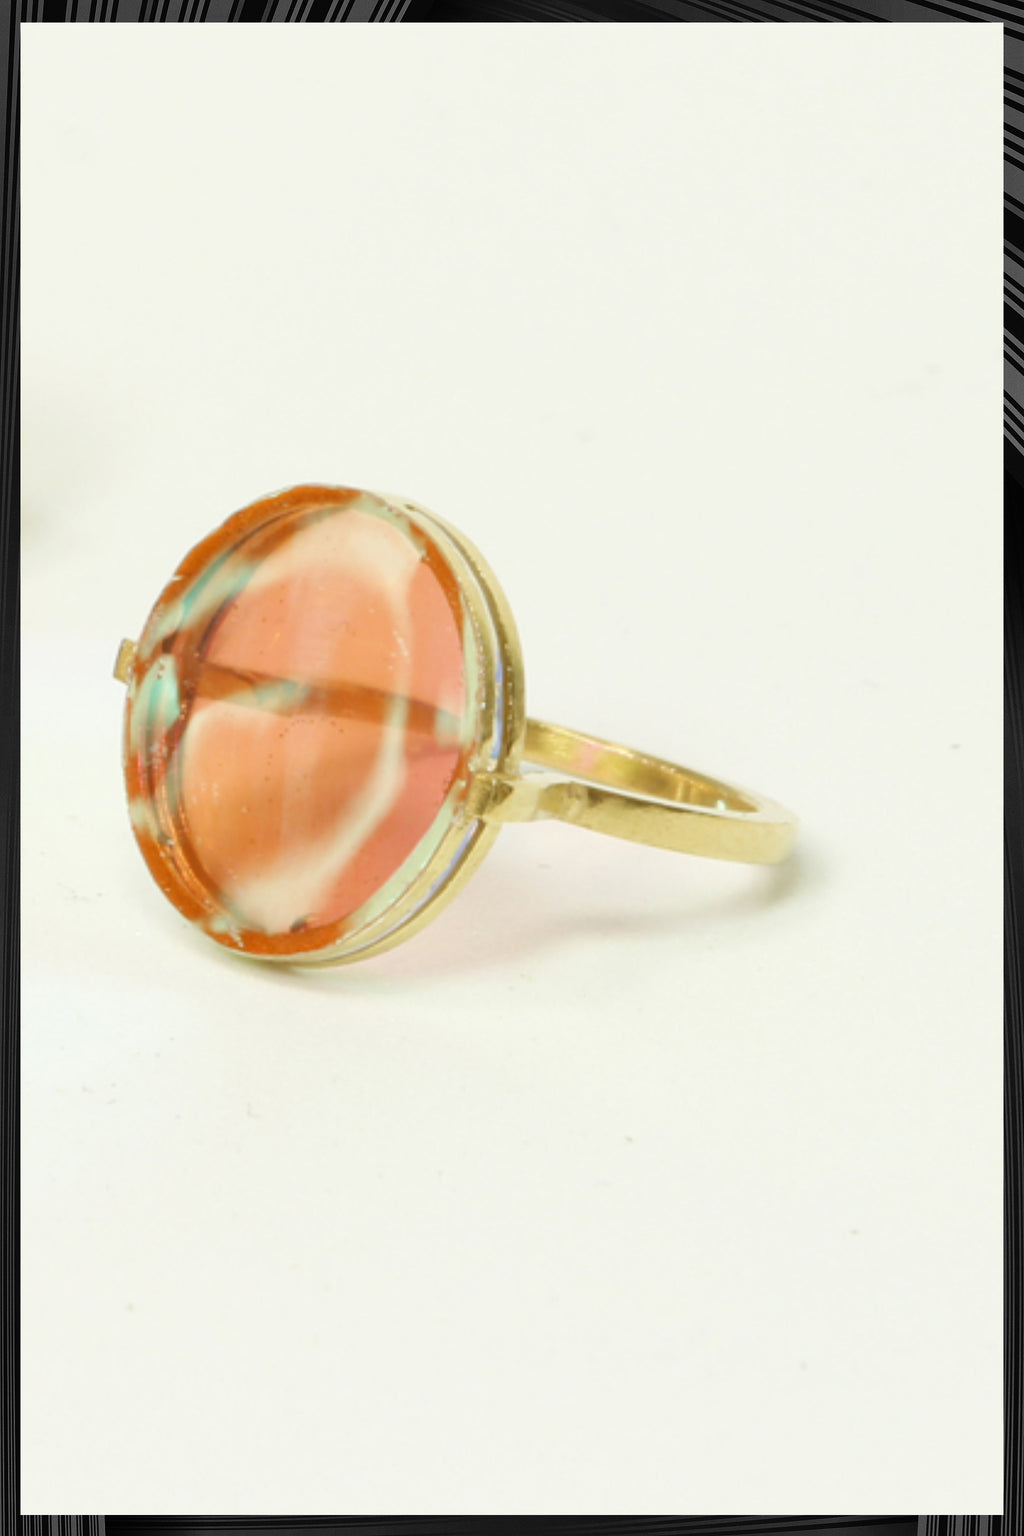 Circular Ring | Free Delivery - Quick Shipping